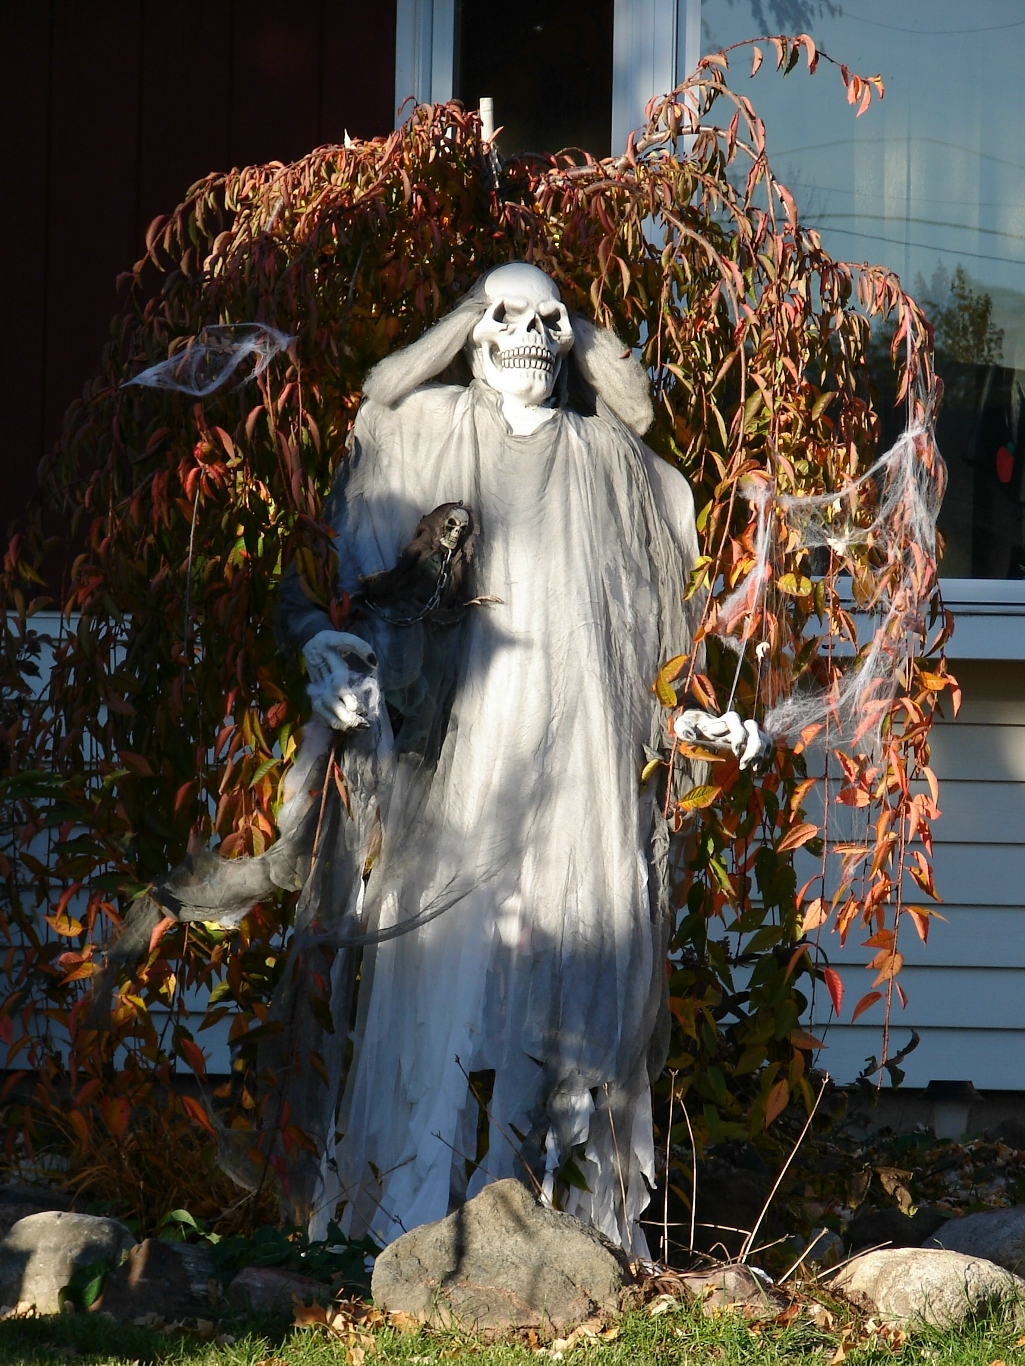 Best halloween decorated yards - Patio Halloween Decorating Ideas Best Ideas For Halloween Decorations Yard With Easy Tips Outdoor Halloween Yard